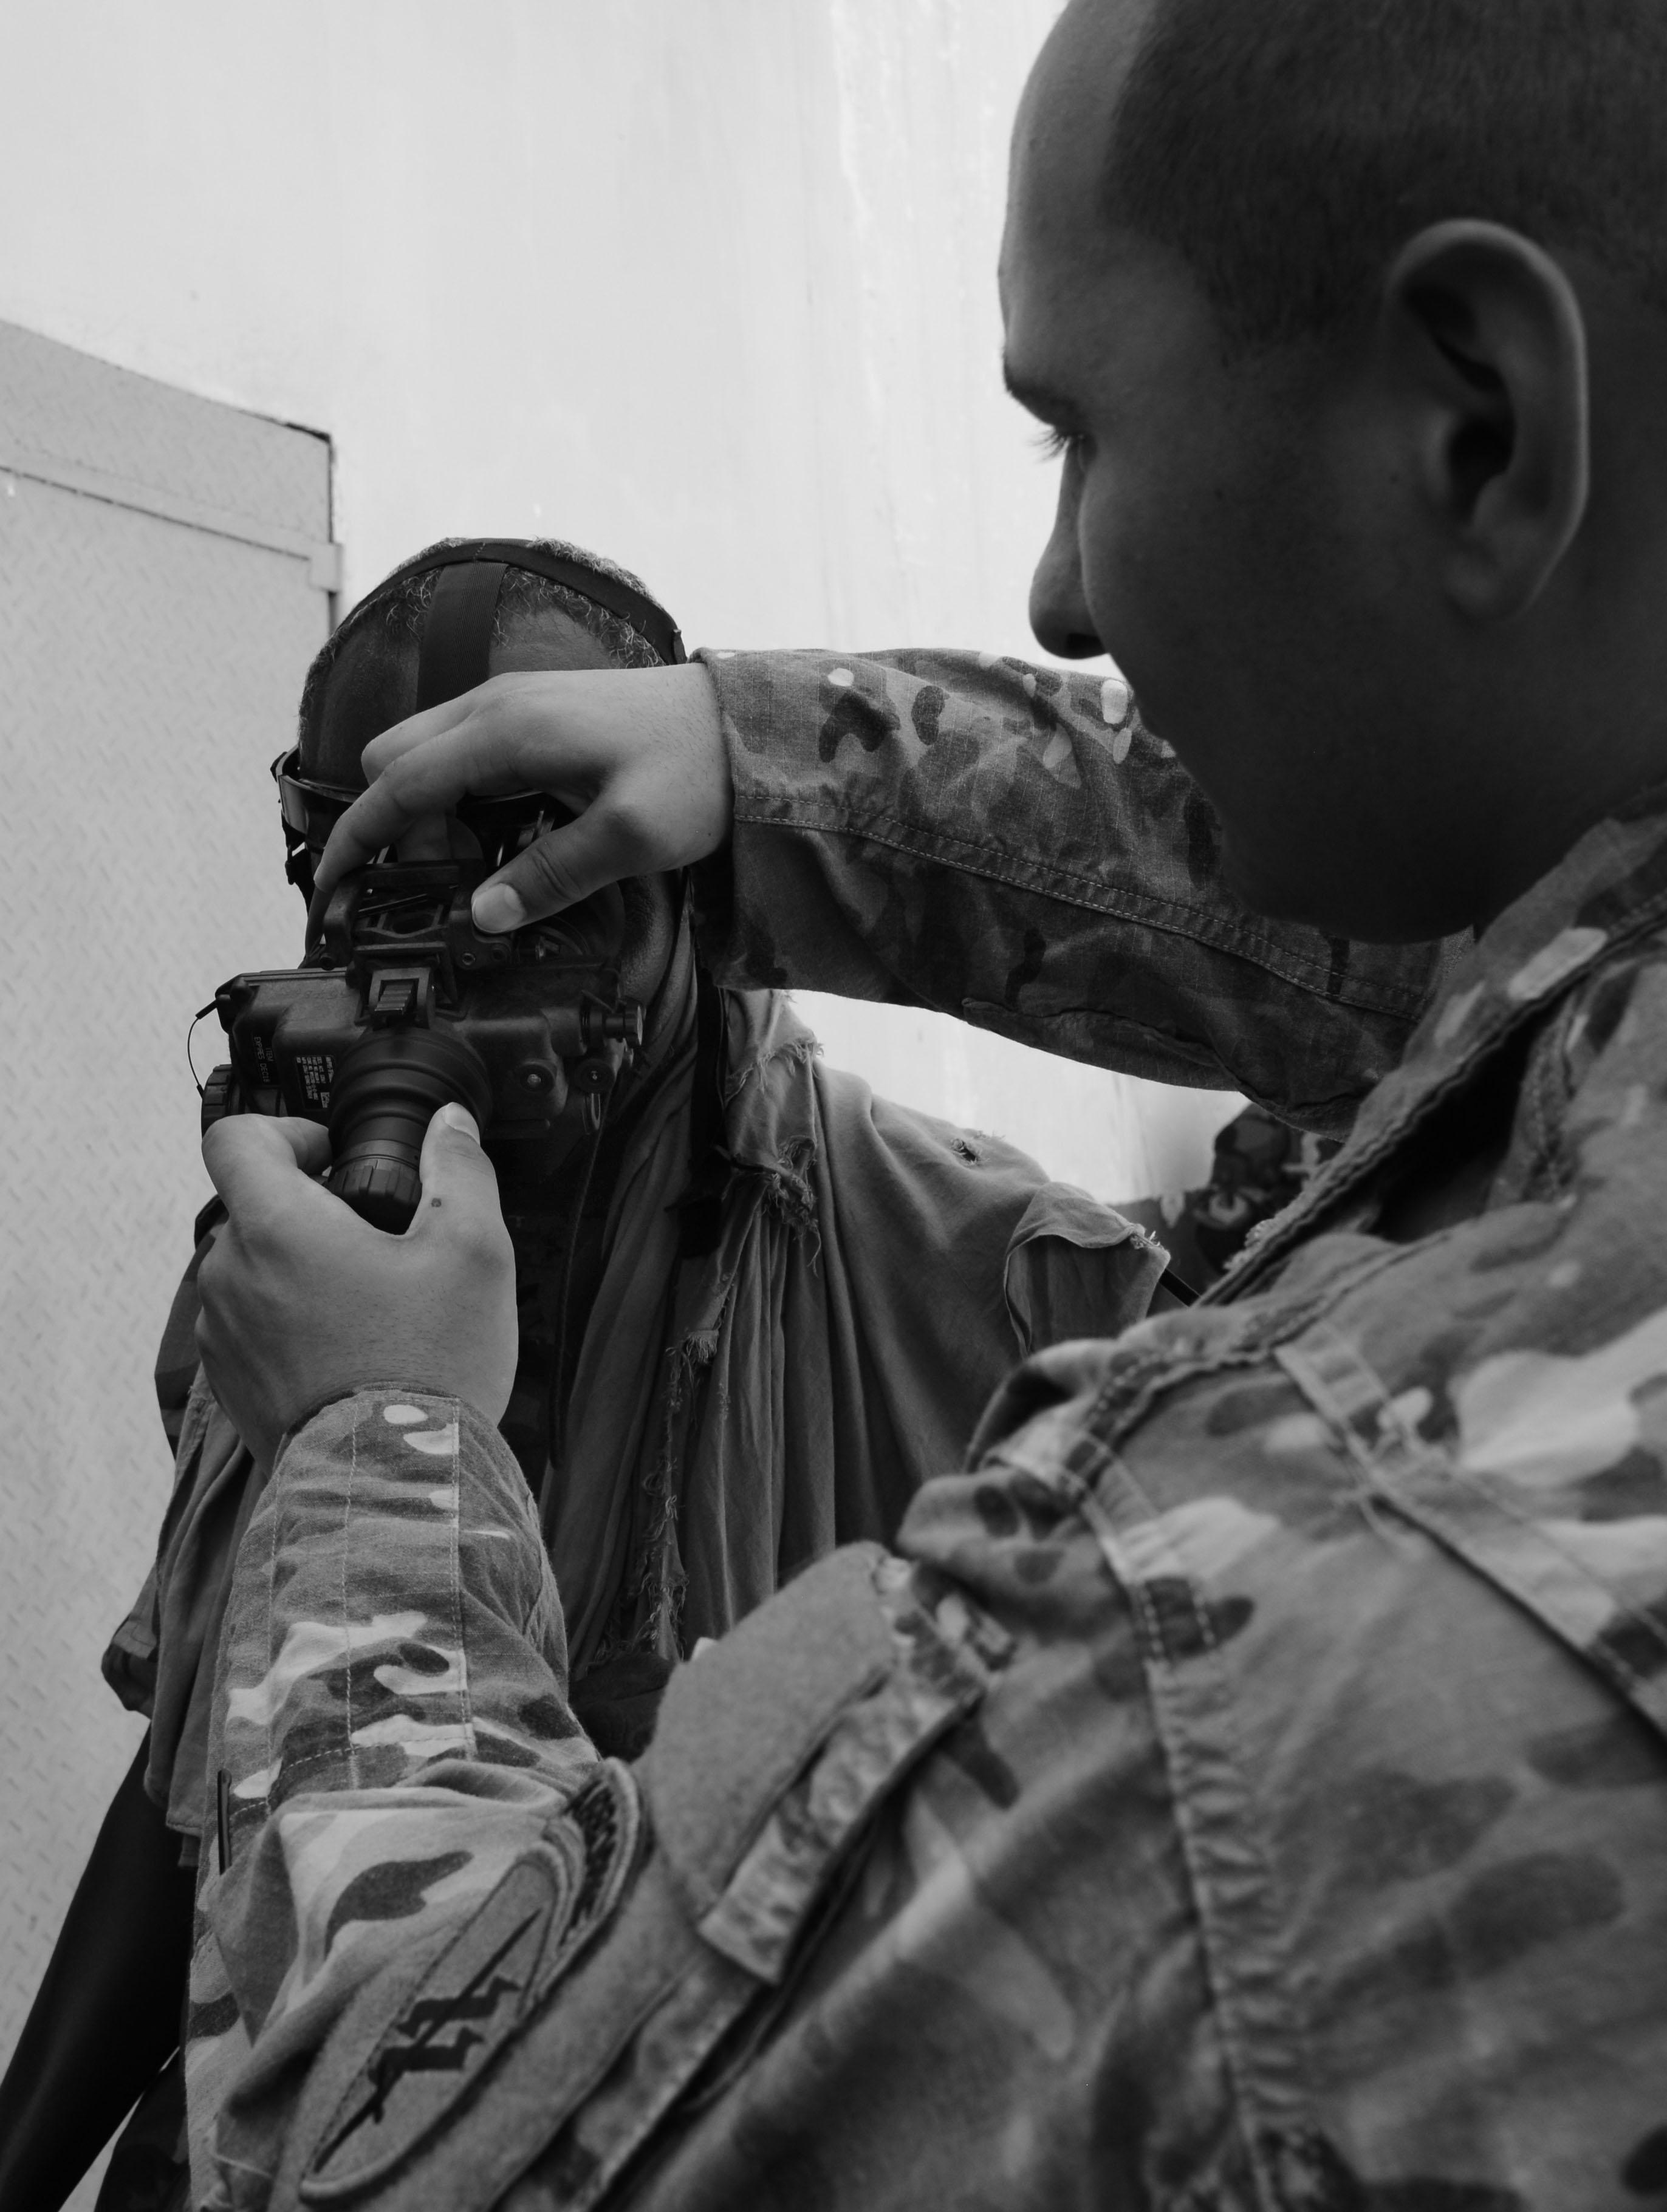 U.S. Army Spc. Christian Kelly, Charlie Company, 411th Civil Affairs Battalion team member, adjusts a Djiboutian soldier's night vision goggles head mount in Djibouti City, Oct. 10, 2016. Soldiers worked in small teams to navigate obstacles in a dark room to find a designated object and bring it back outside the building during the NVG exercise. (U.S. Air Force photo by Staff Sgt. Benjamin Raughton)